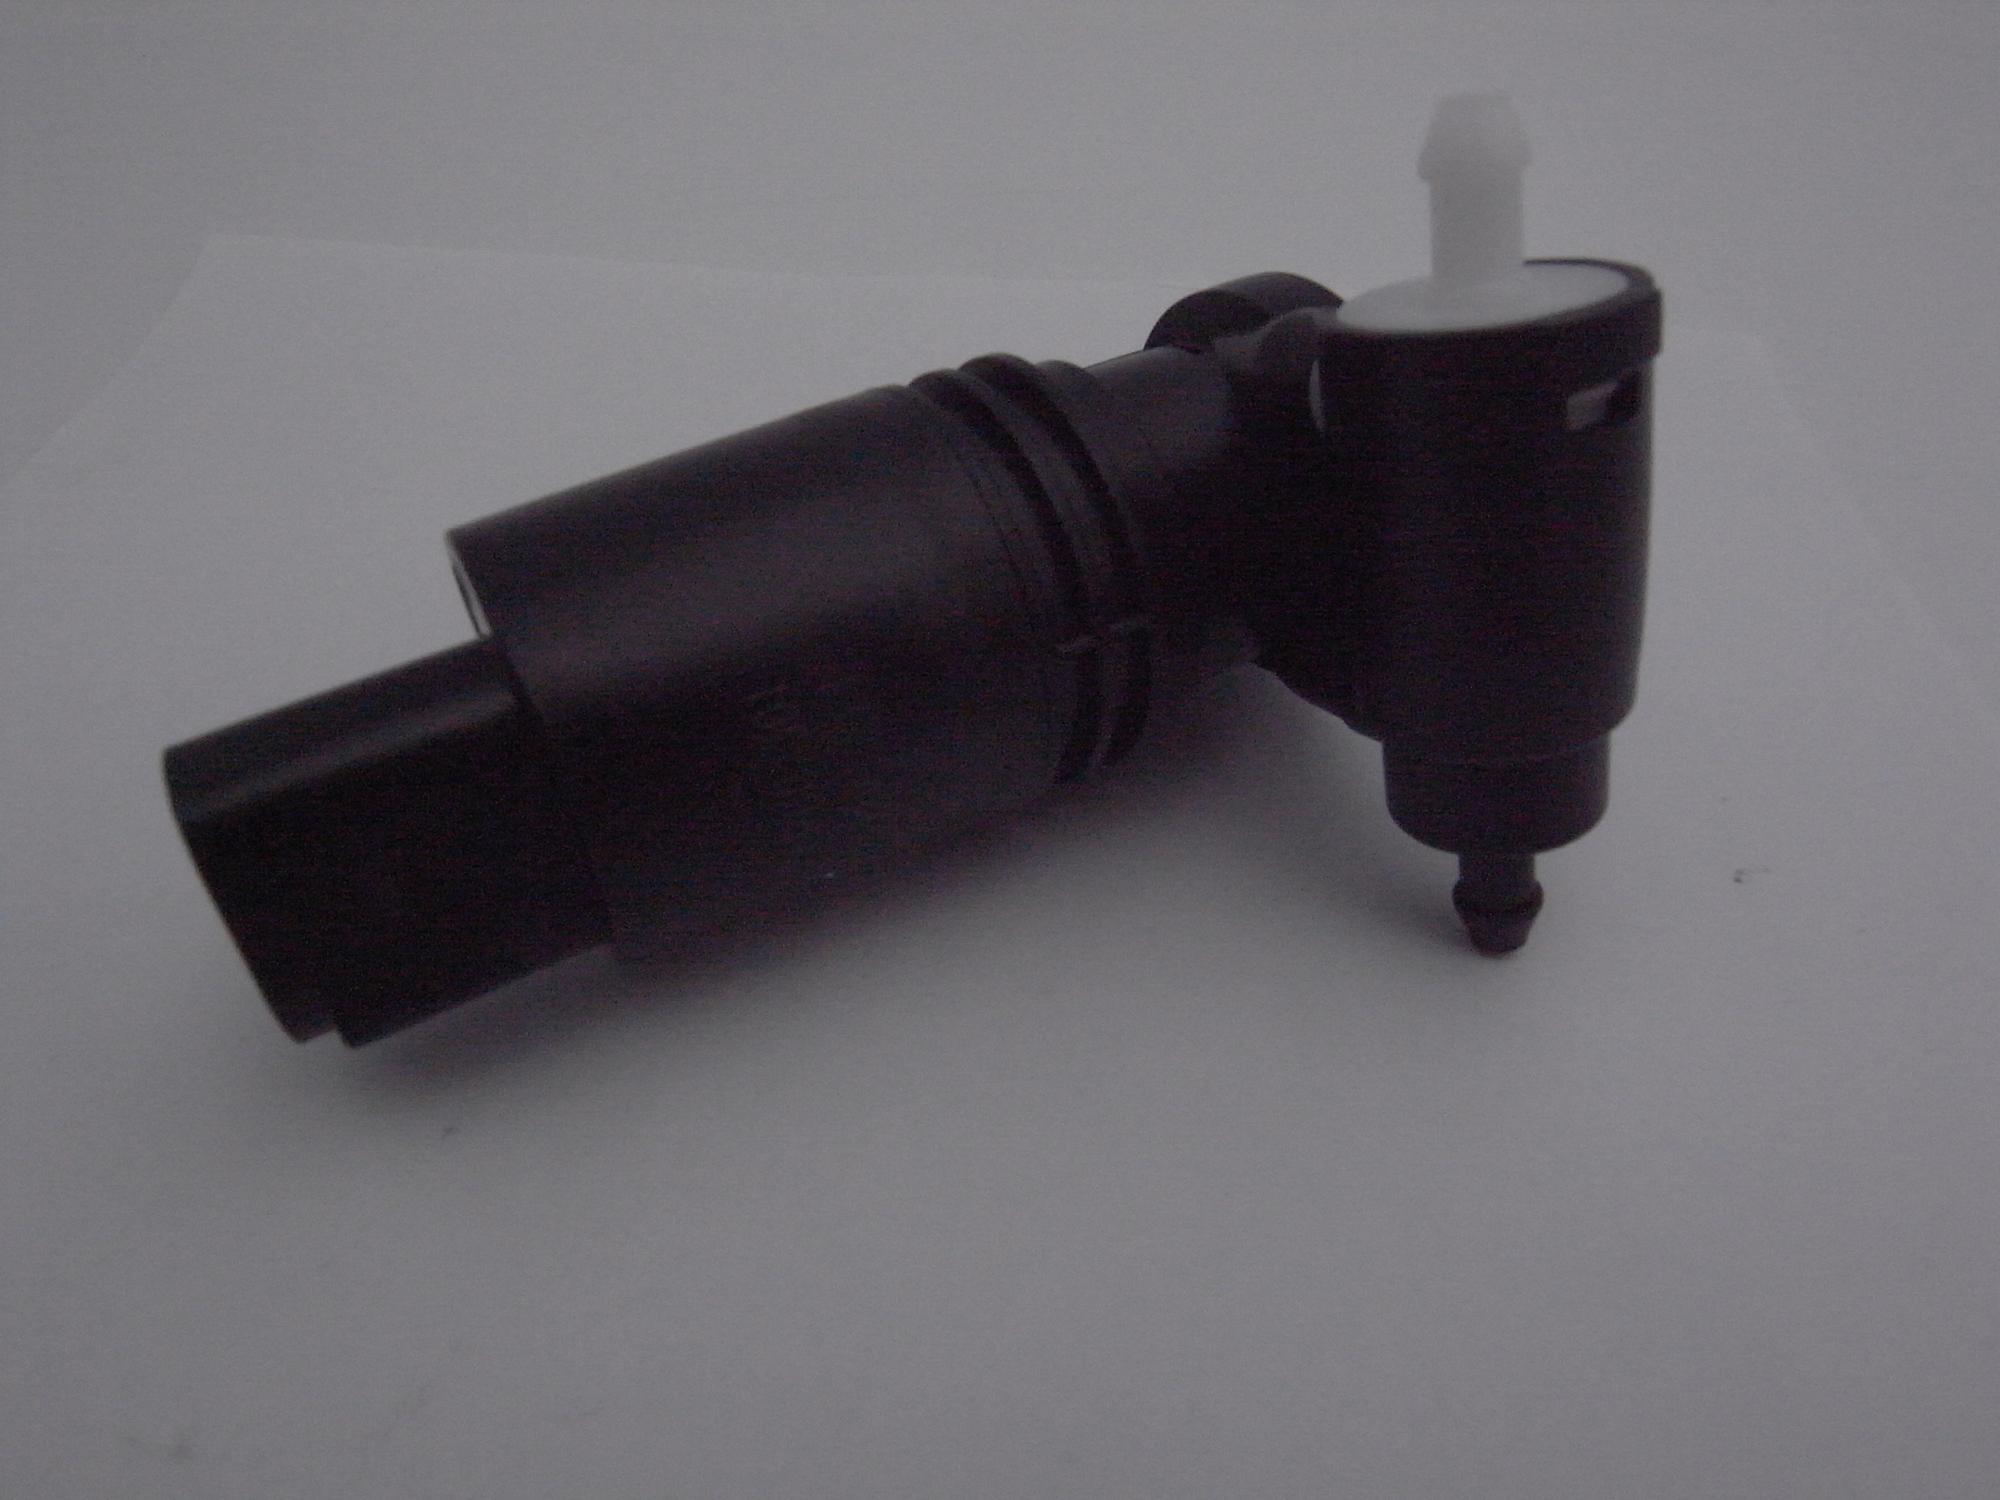 LR002301 car body parts washer pump for Freelander 2 2006-